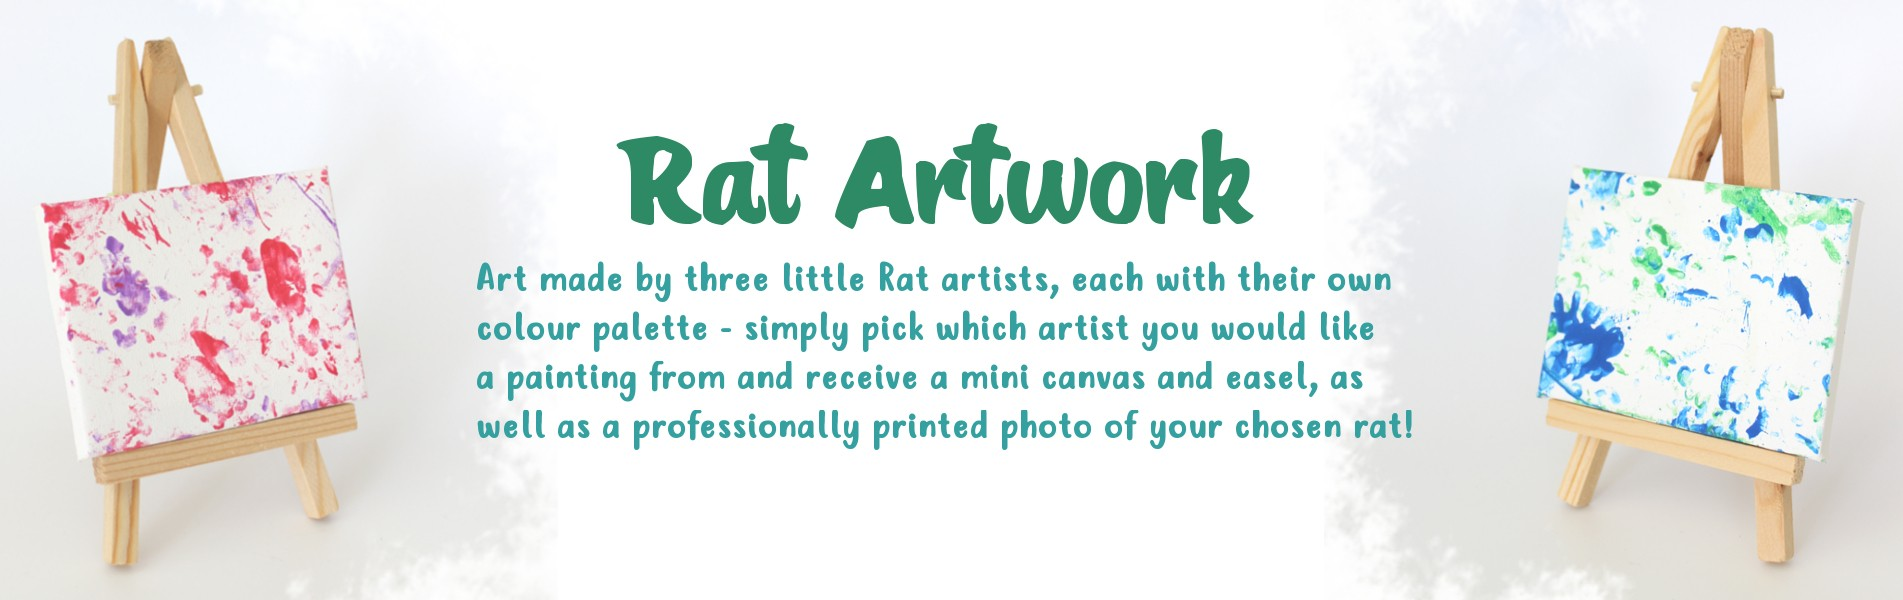 Rat Artwork!